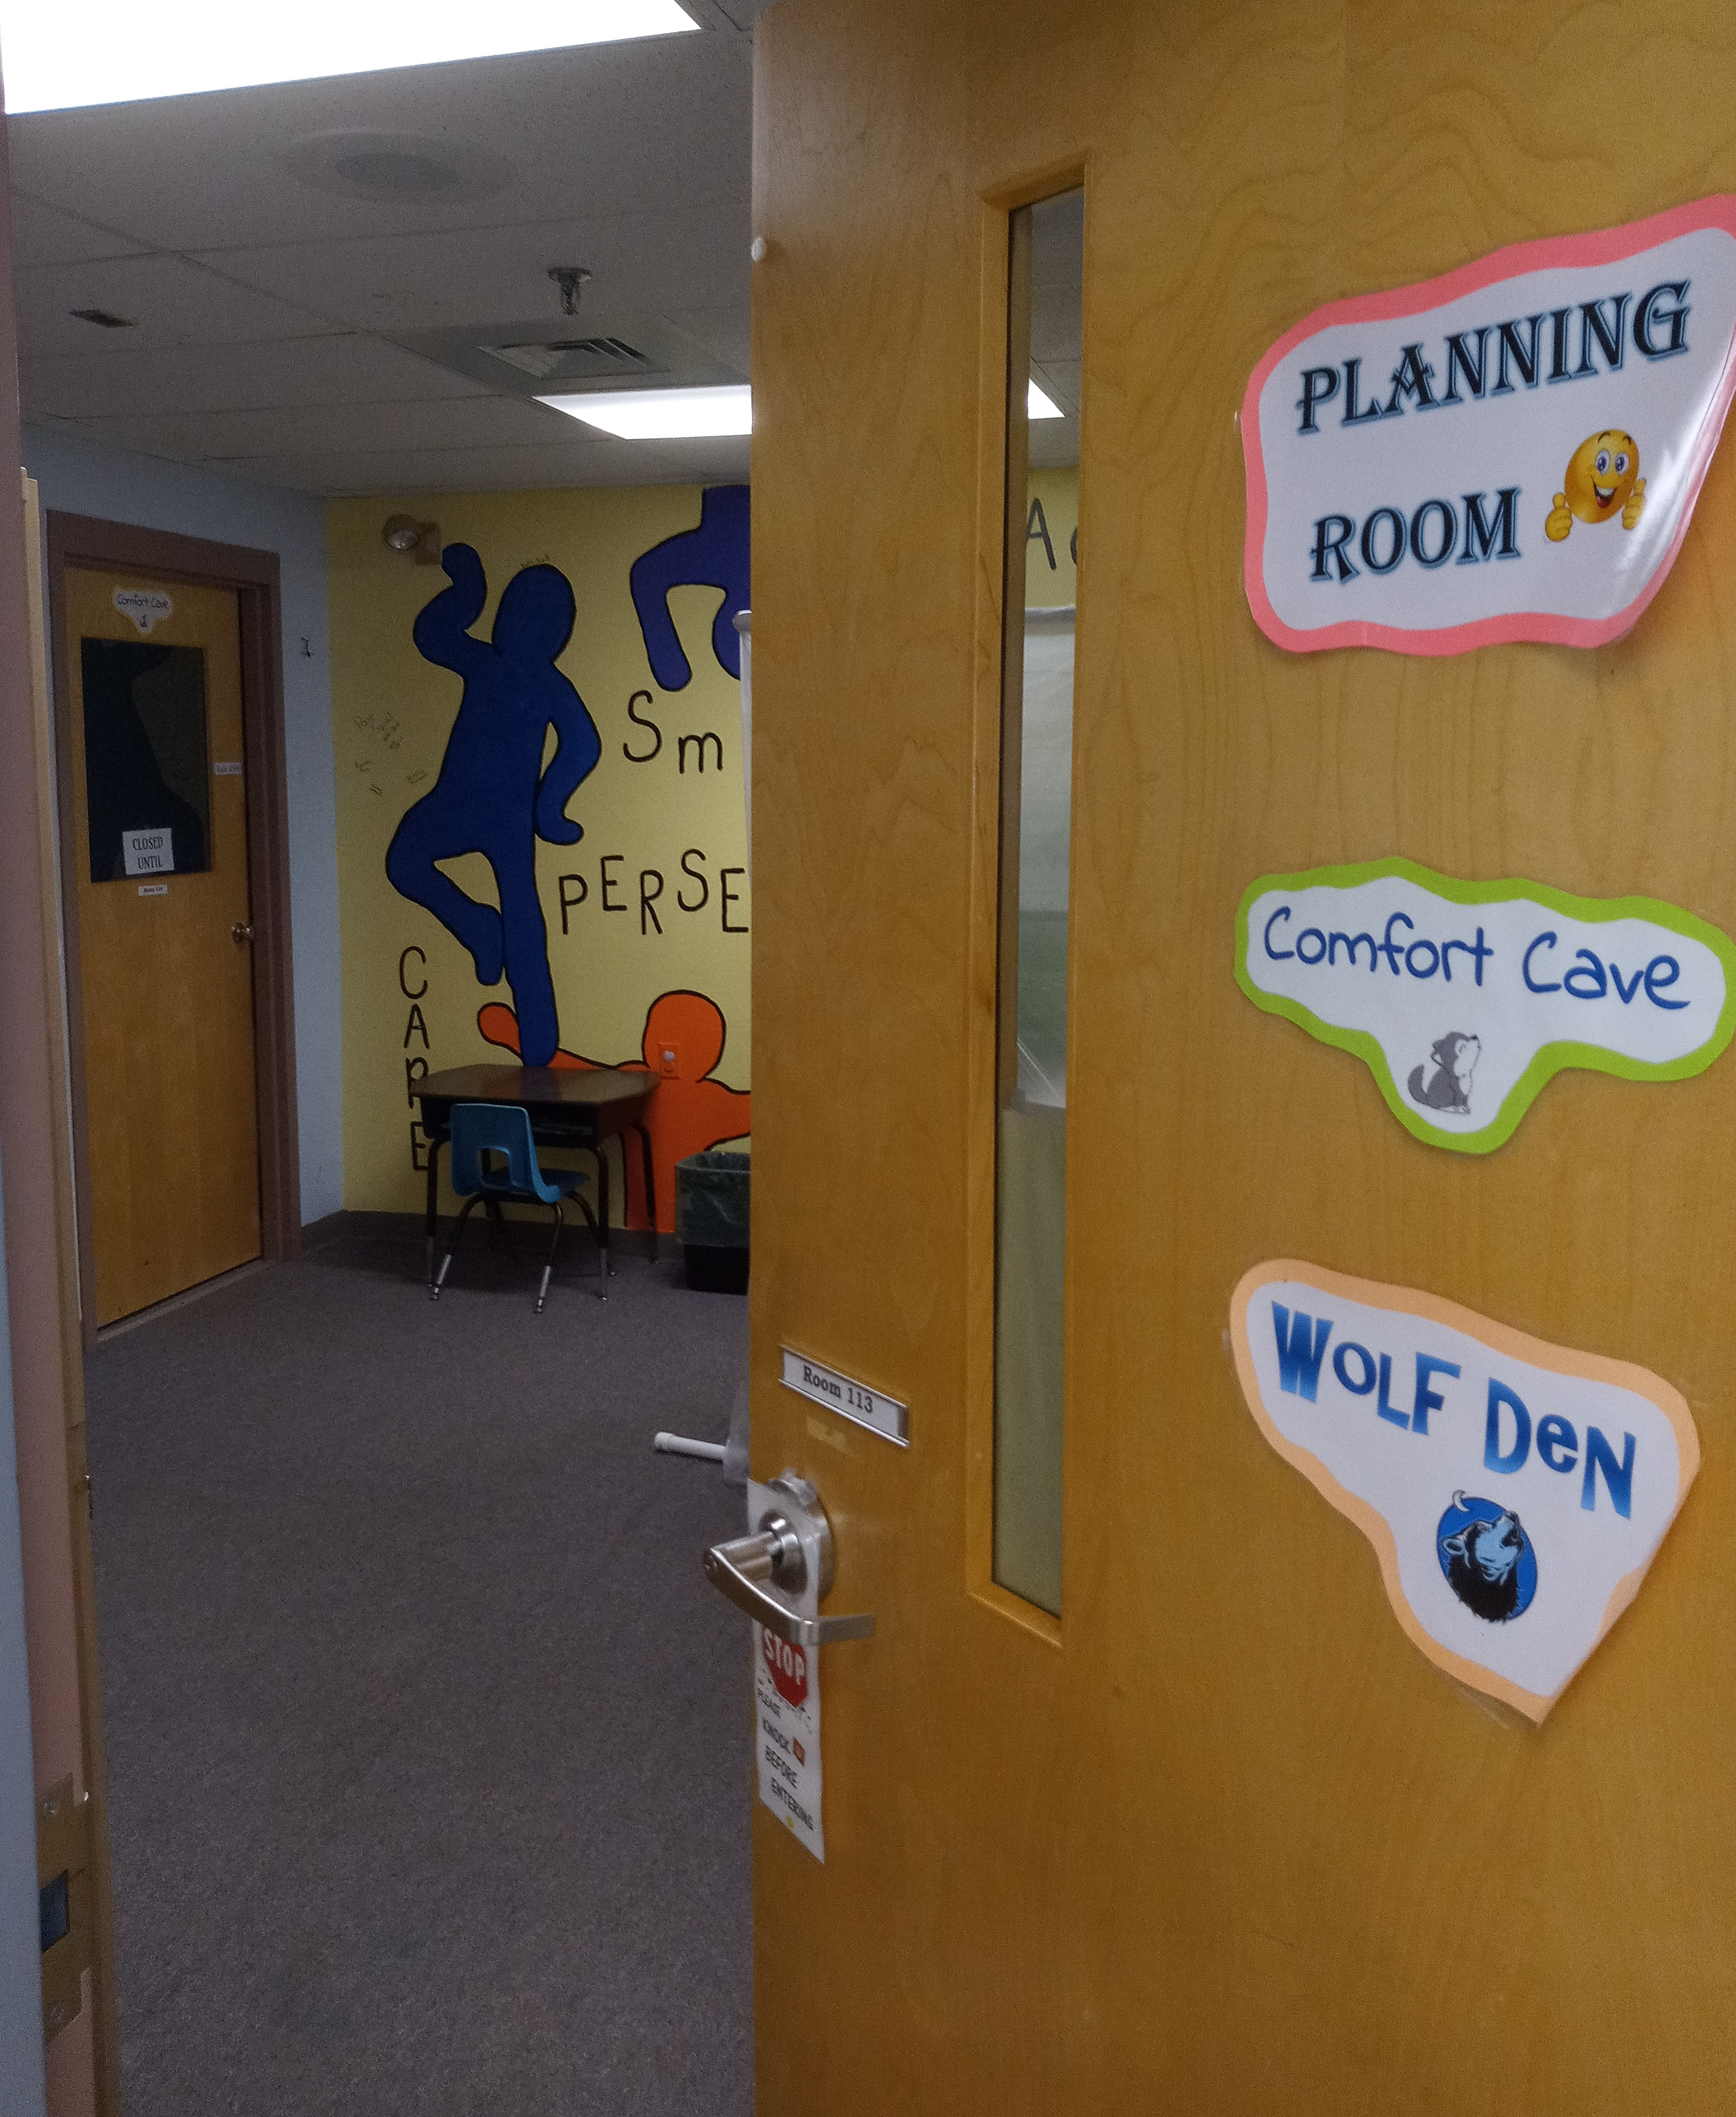 Photo of the door to the planning room with inviting signs on it.